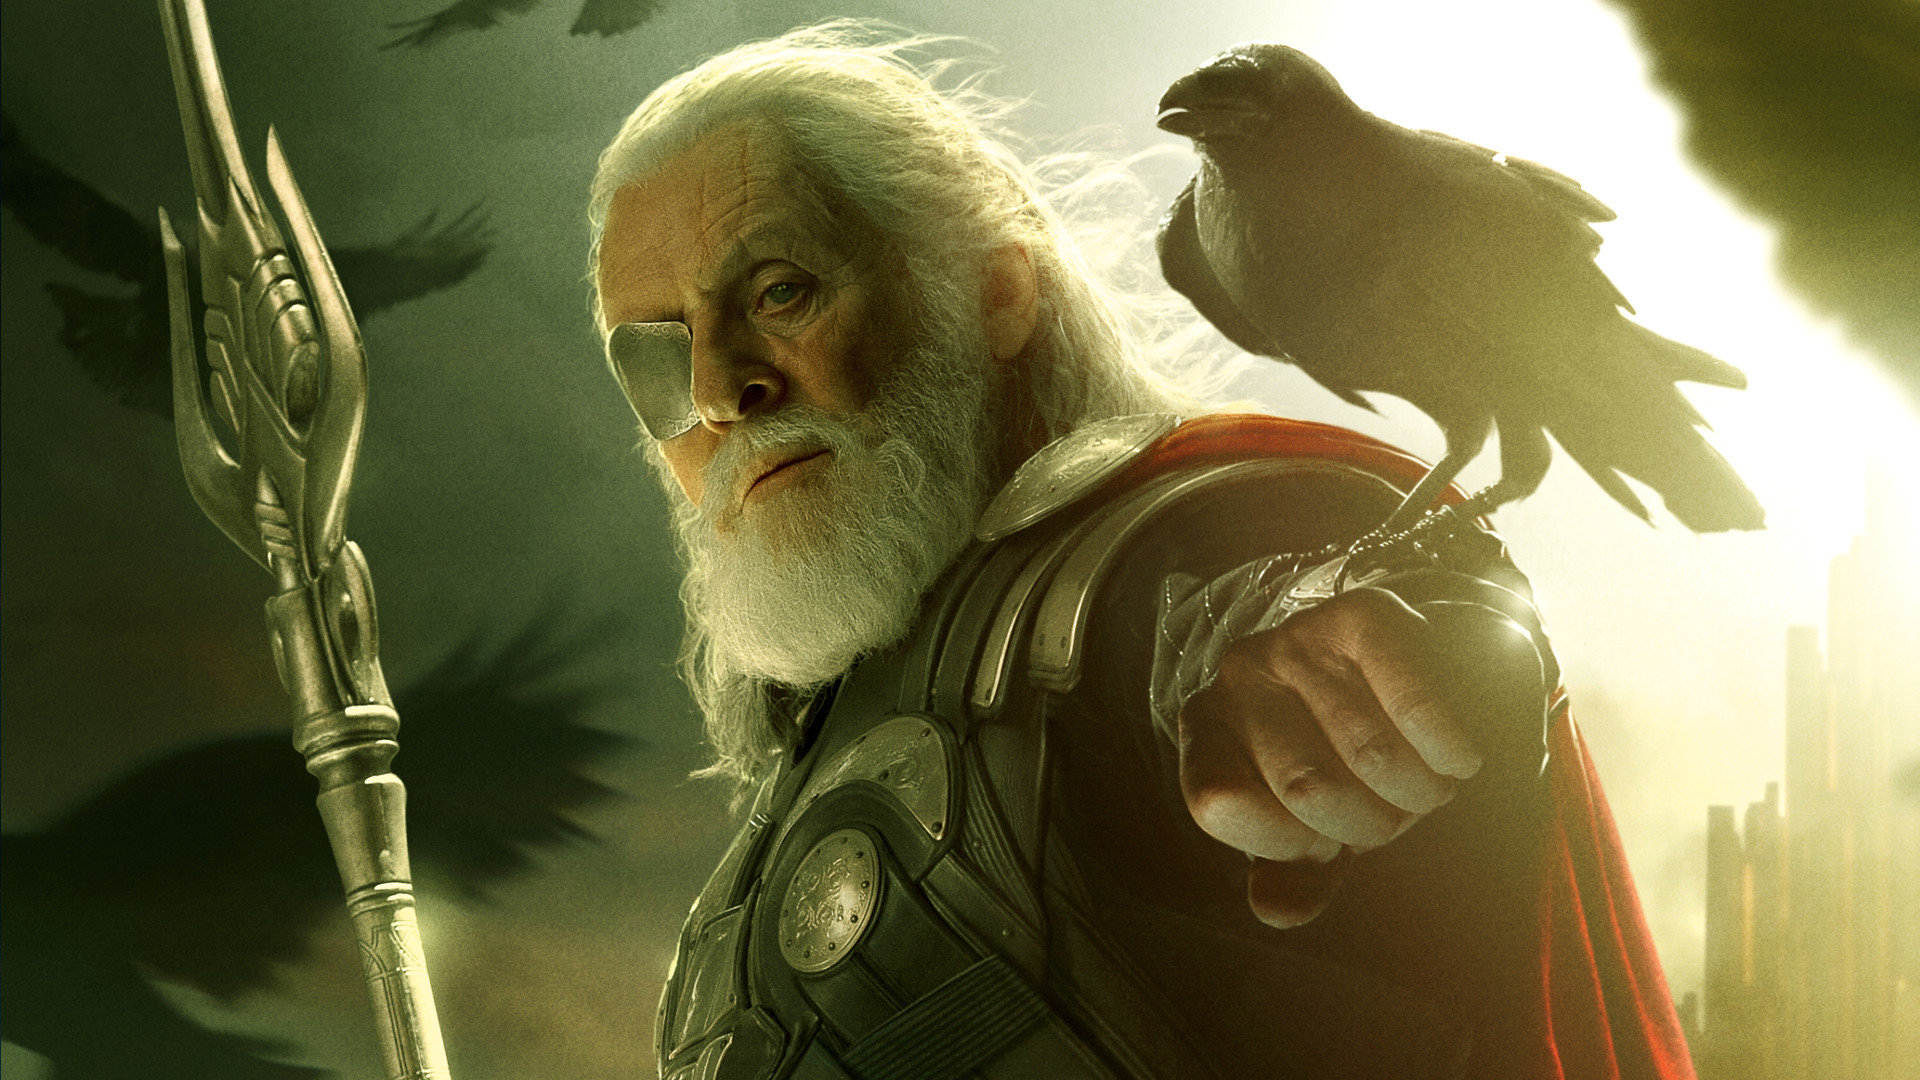 Awesome Thor The Dark World Free Wallpaper Id 438326 For Full Hd